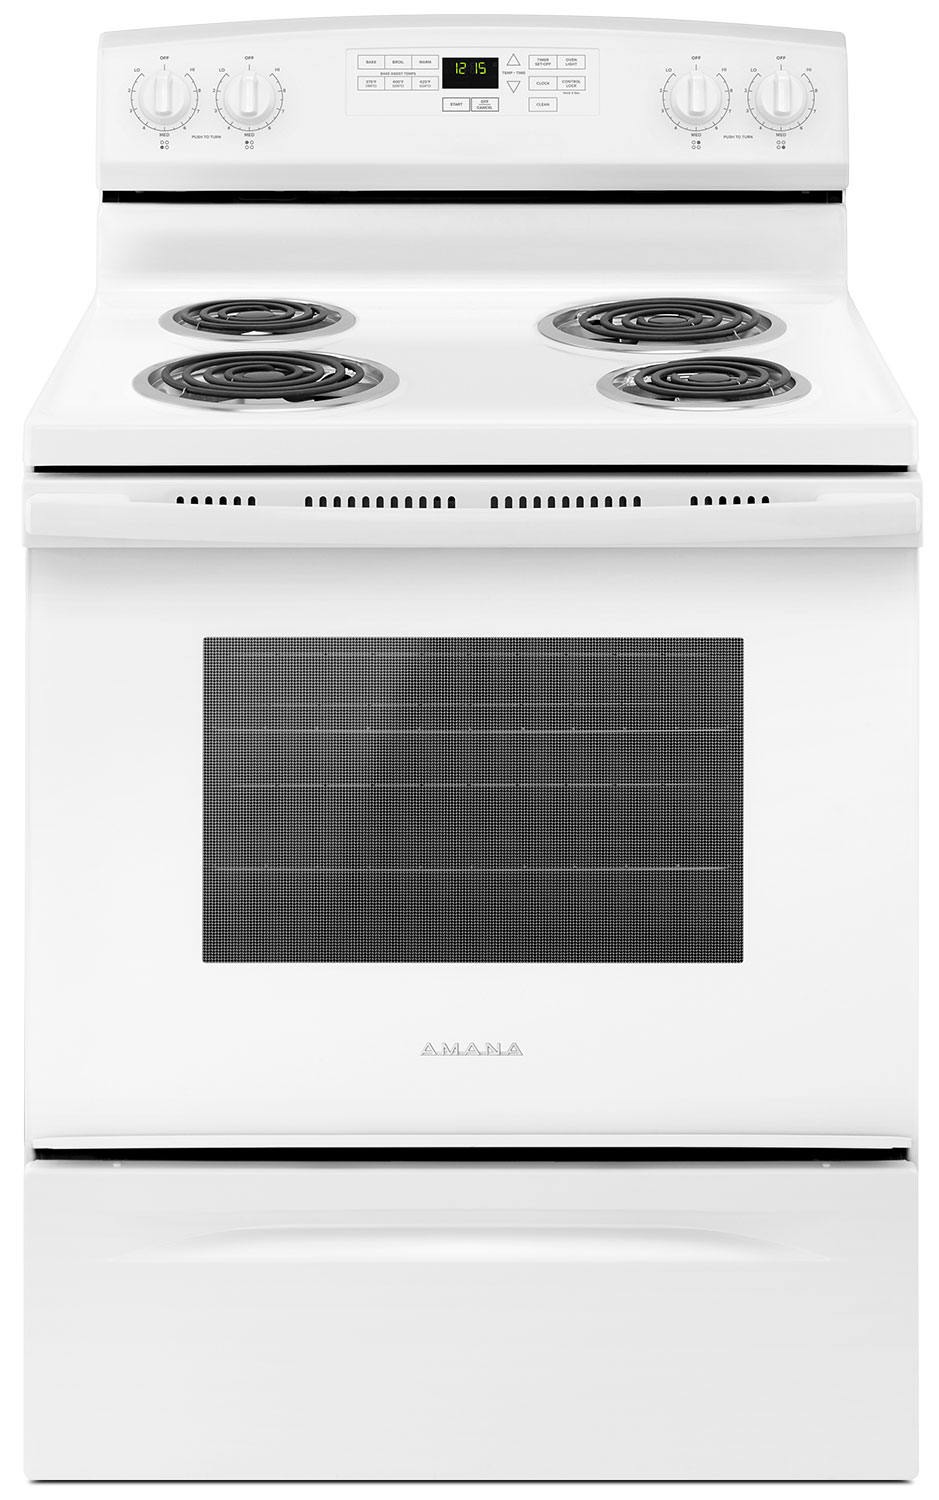 Amana 4.8 Cu. Ft. Freestanding Electric Range – YACR4503SFW